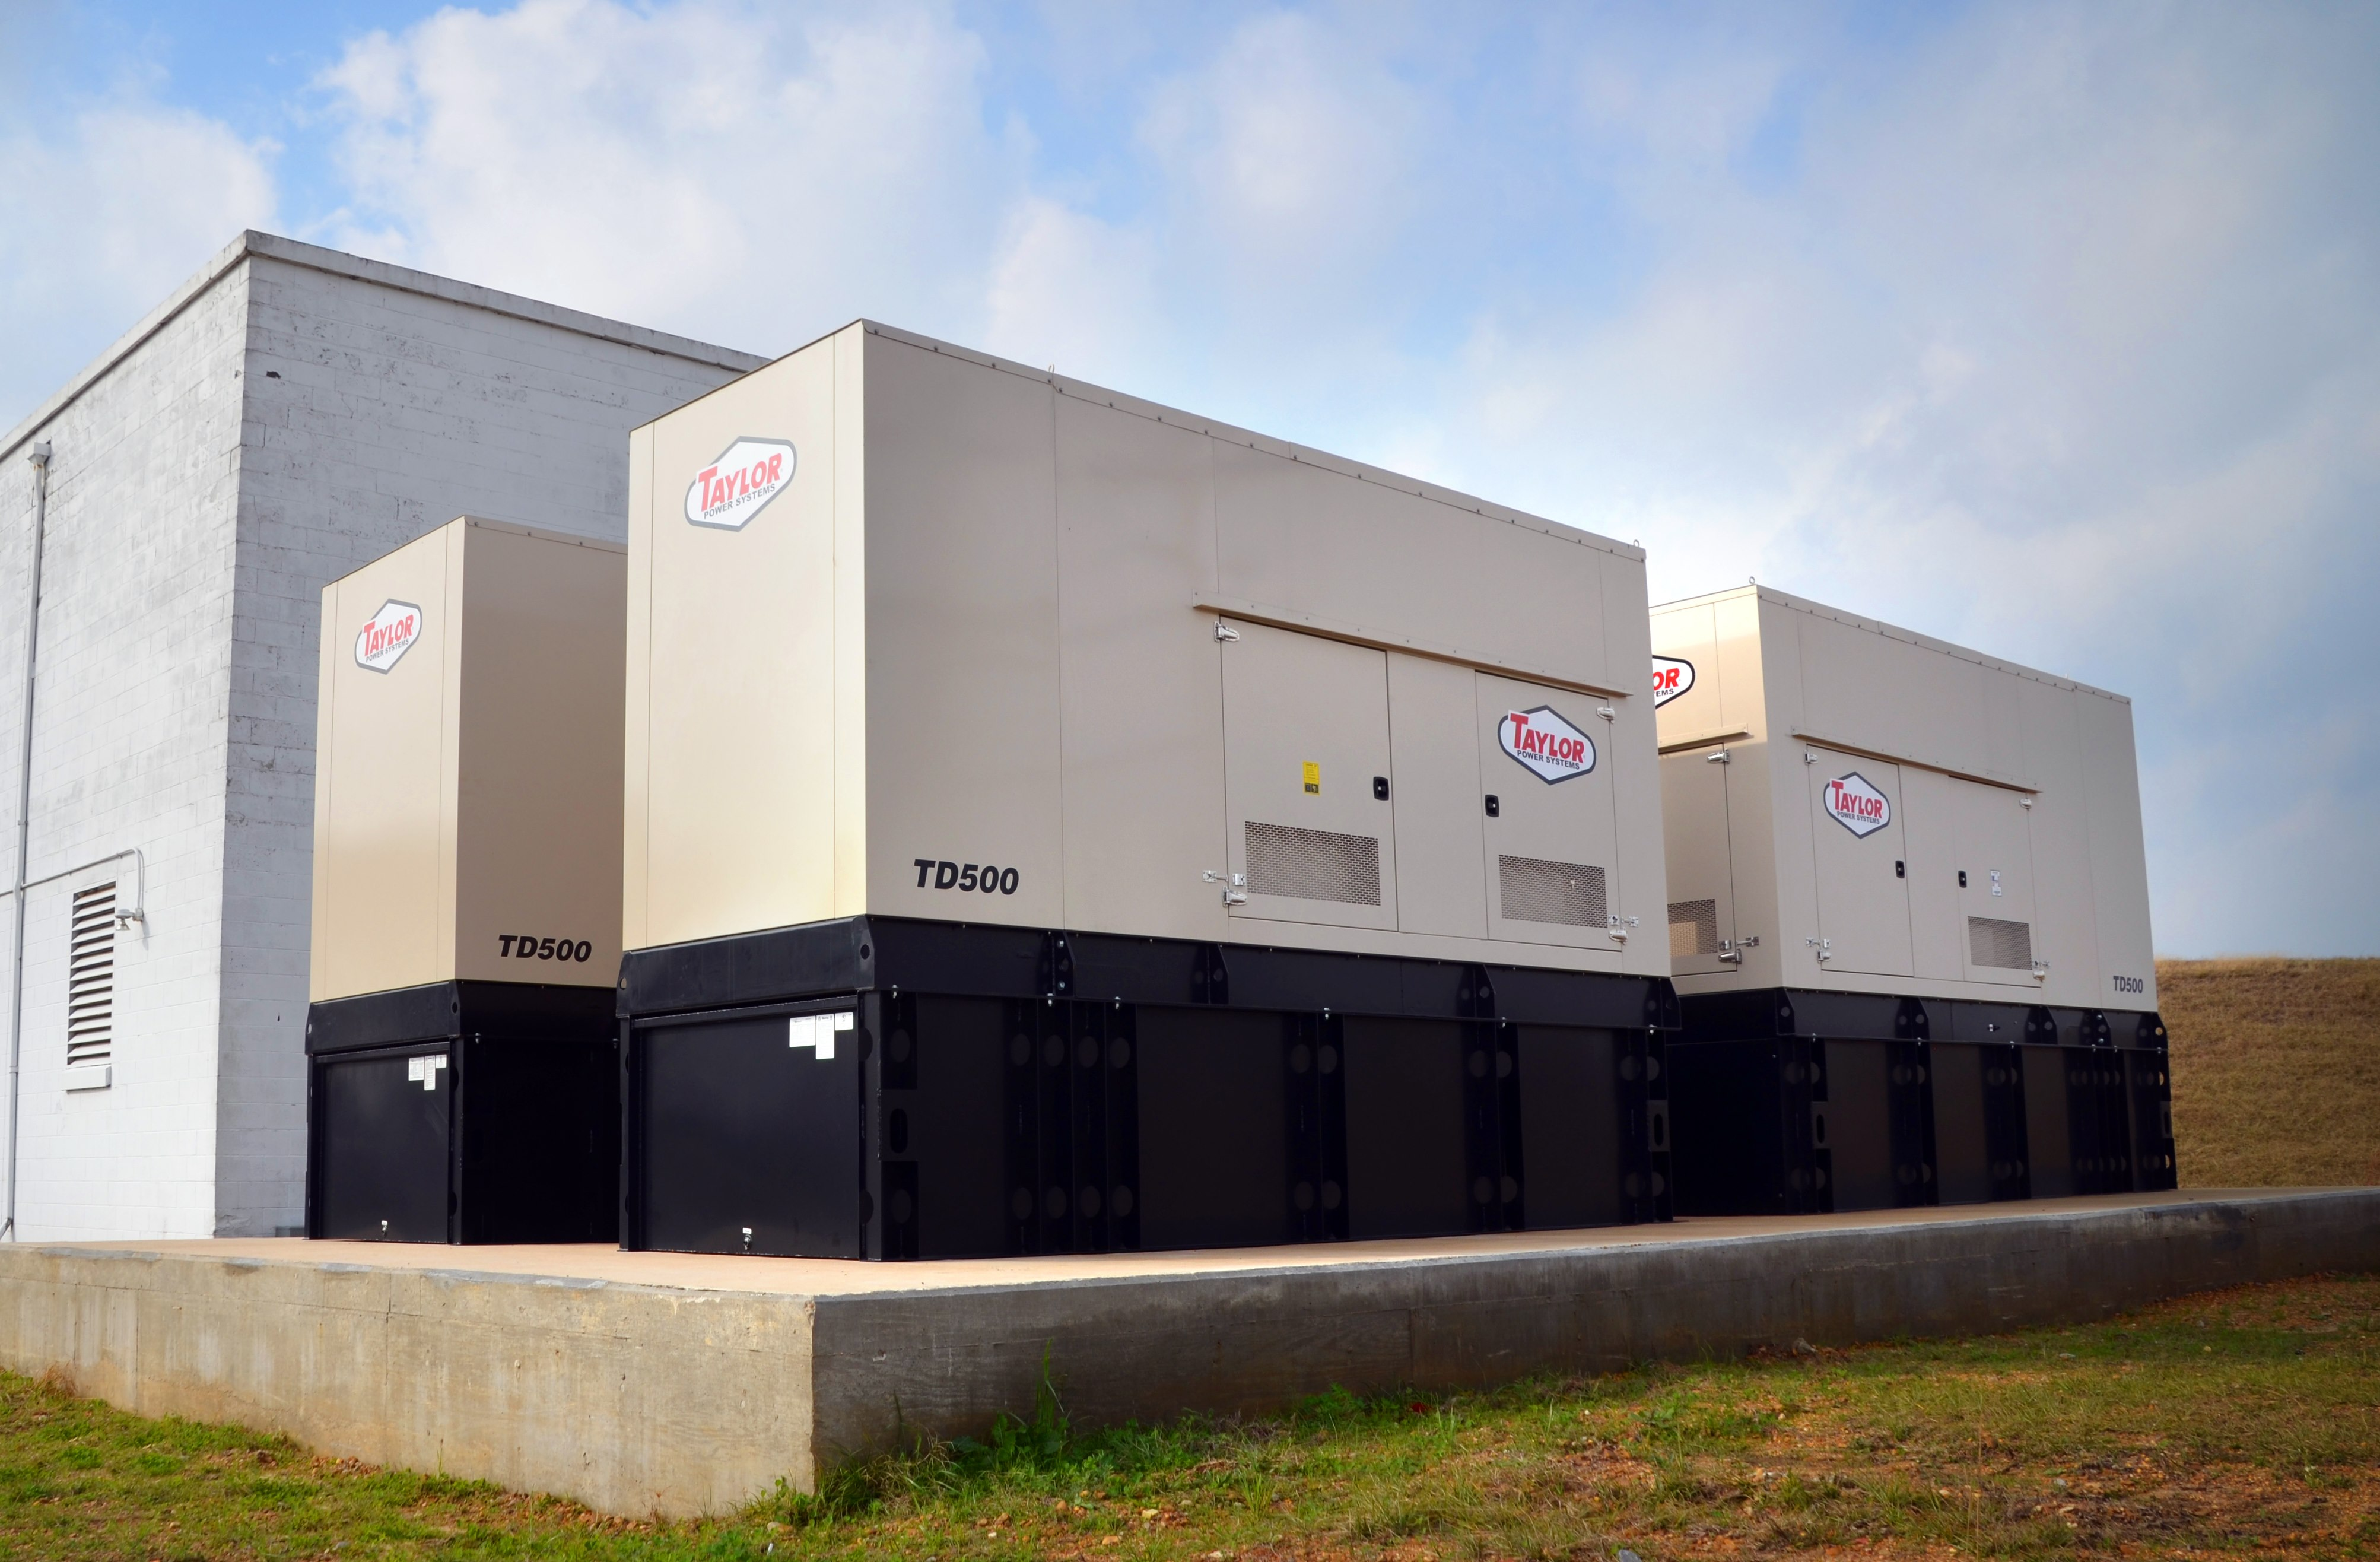 Standby Generators by Taylor Power Systems